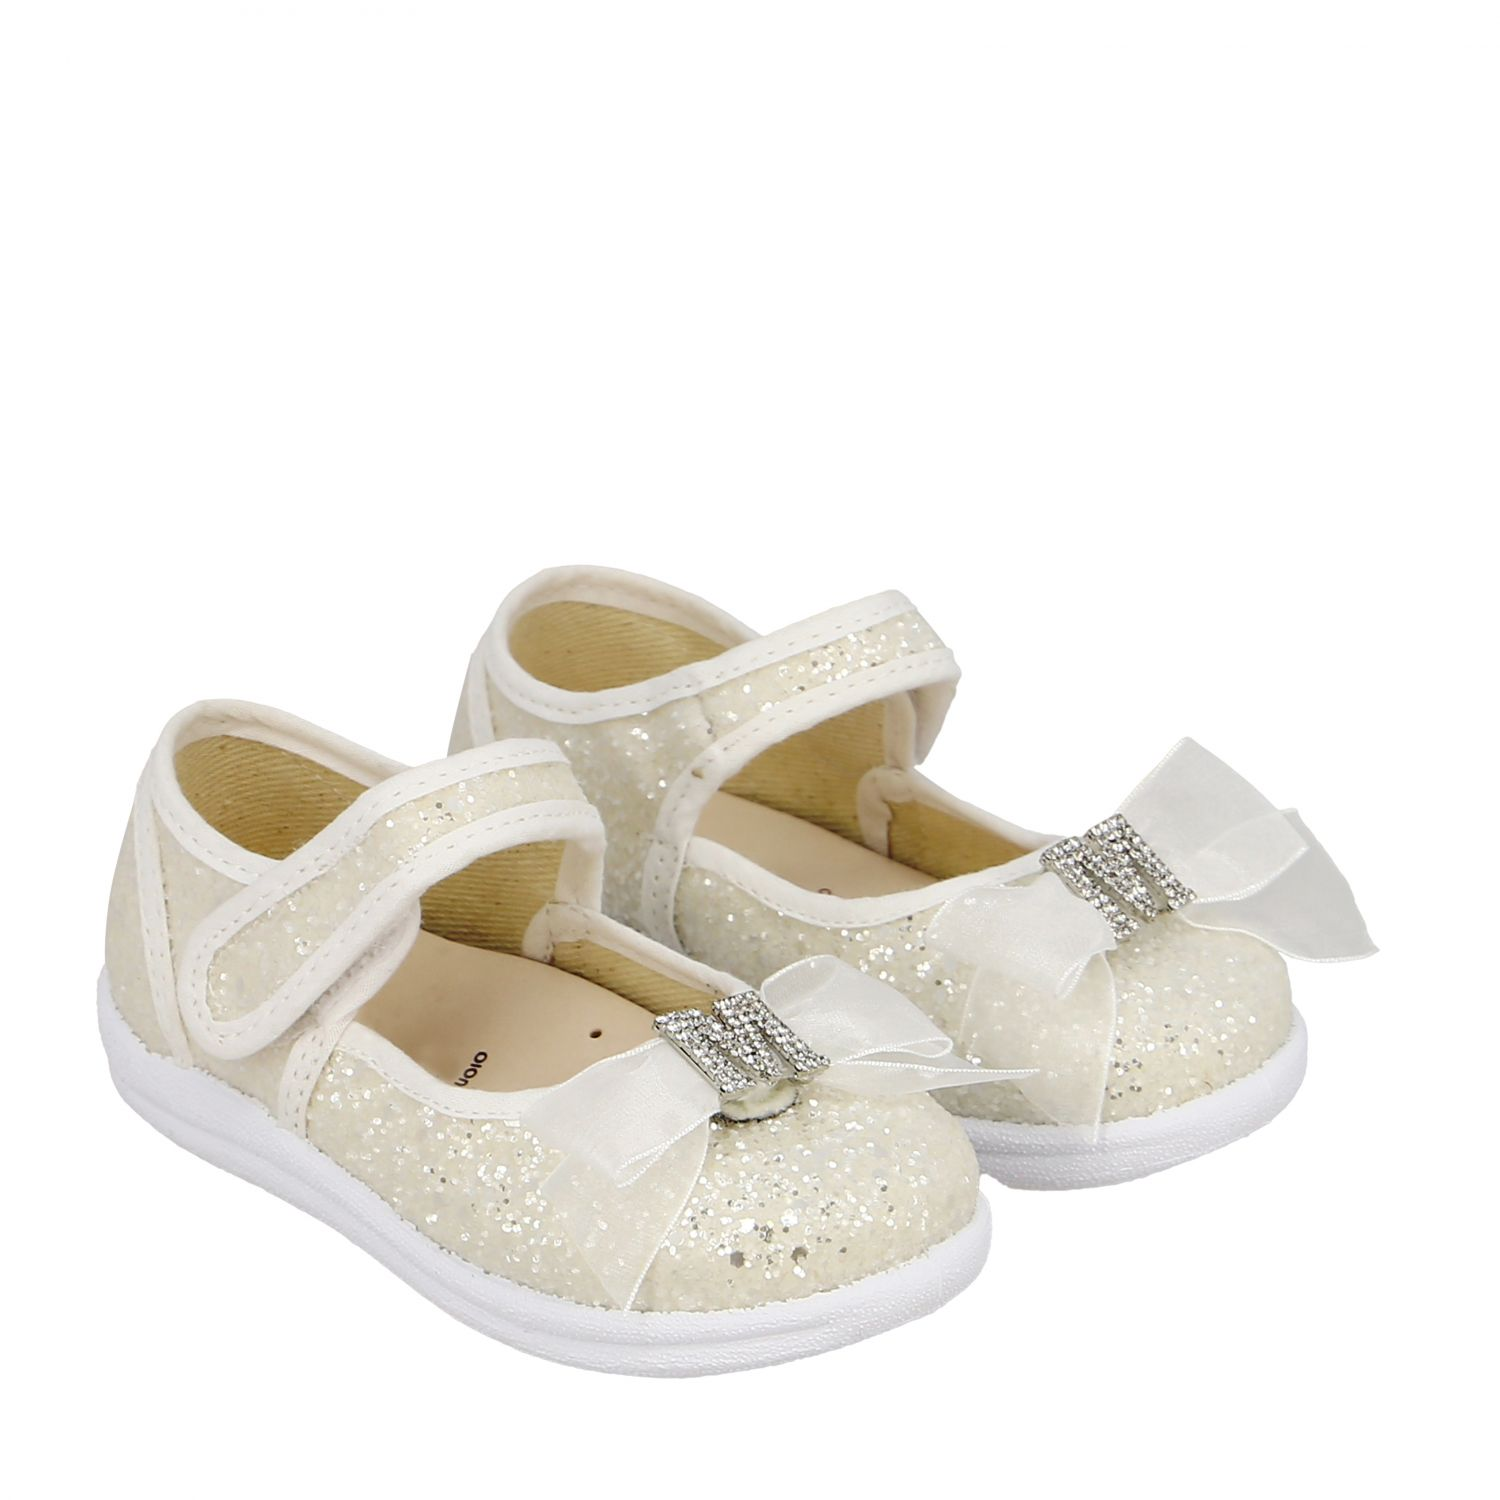 Monnalisa ballet flats in glitter fabric with bow and rhinestones white 2